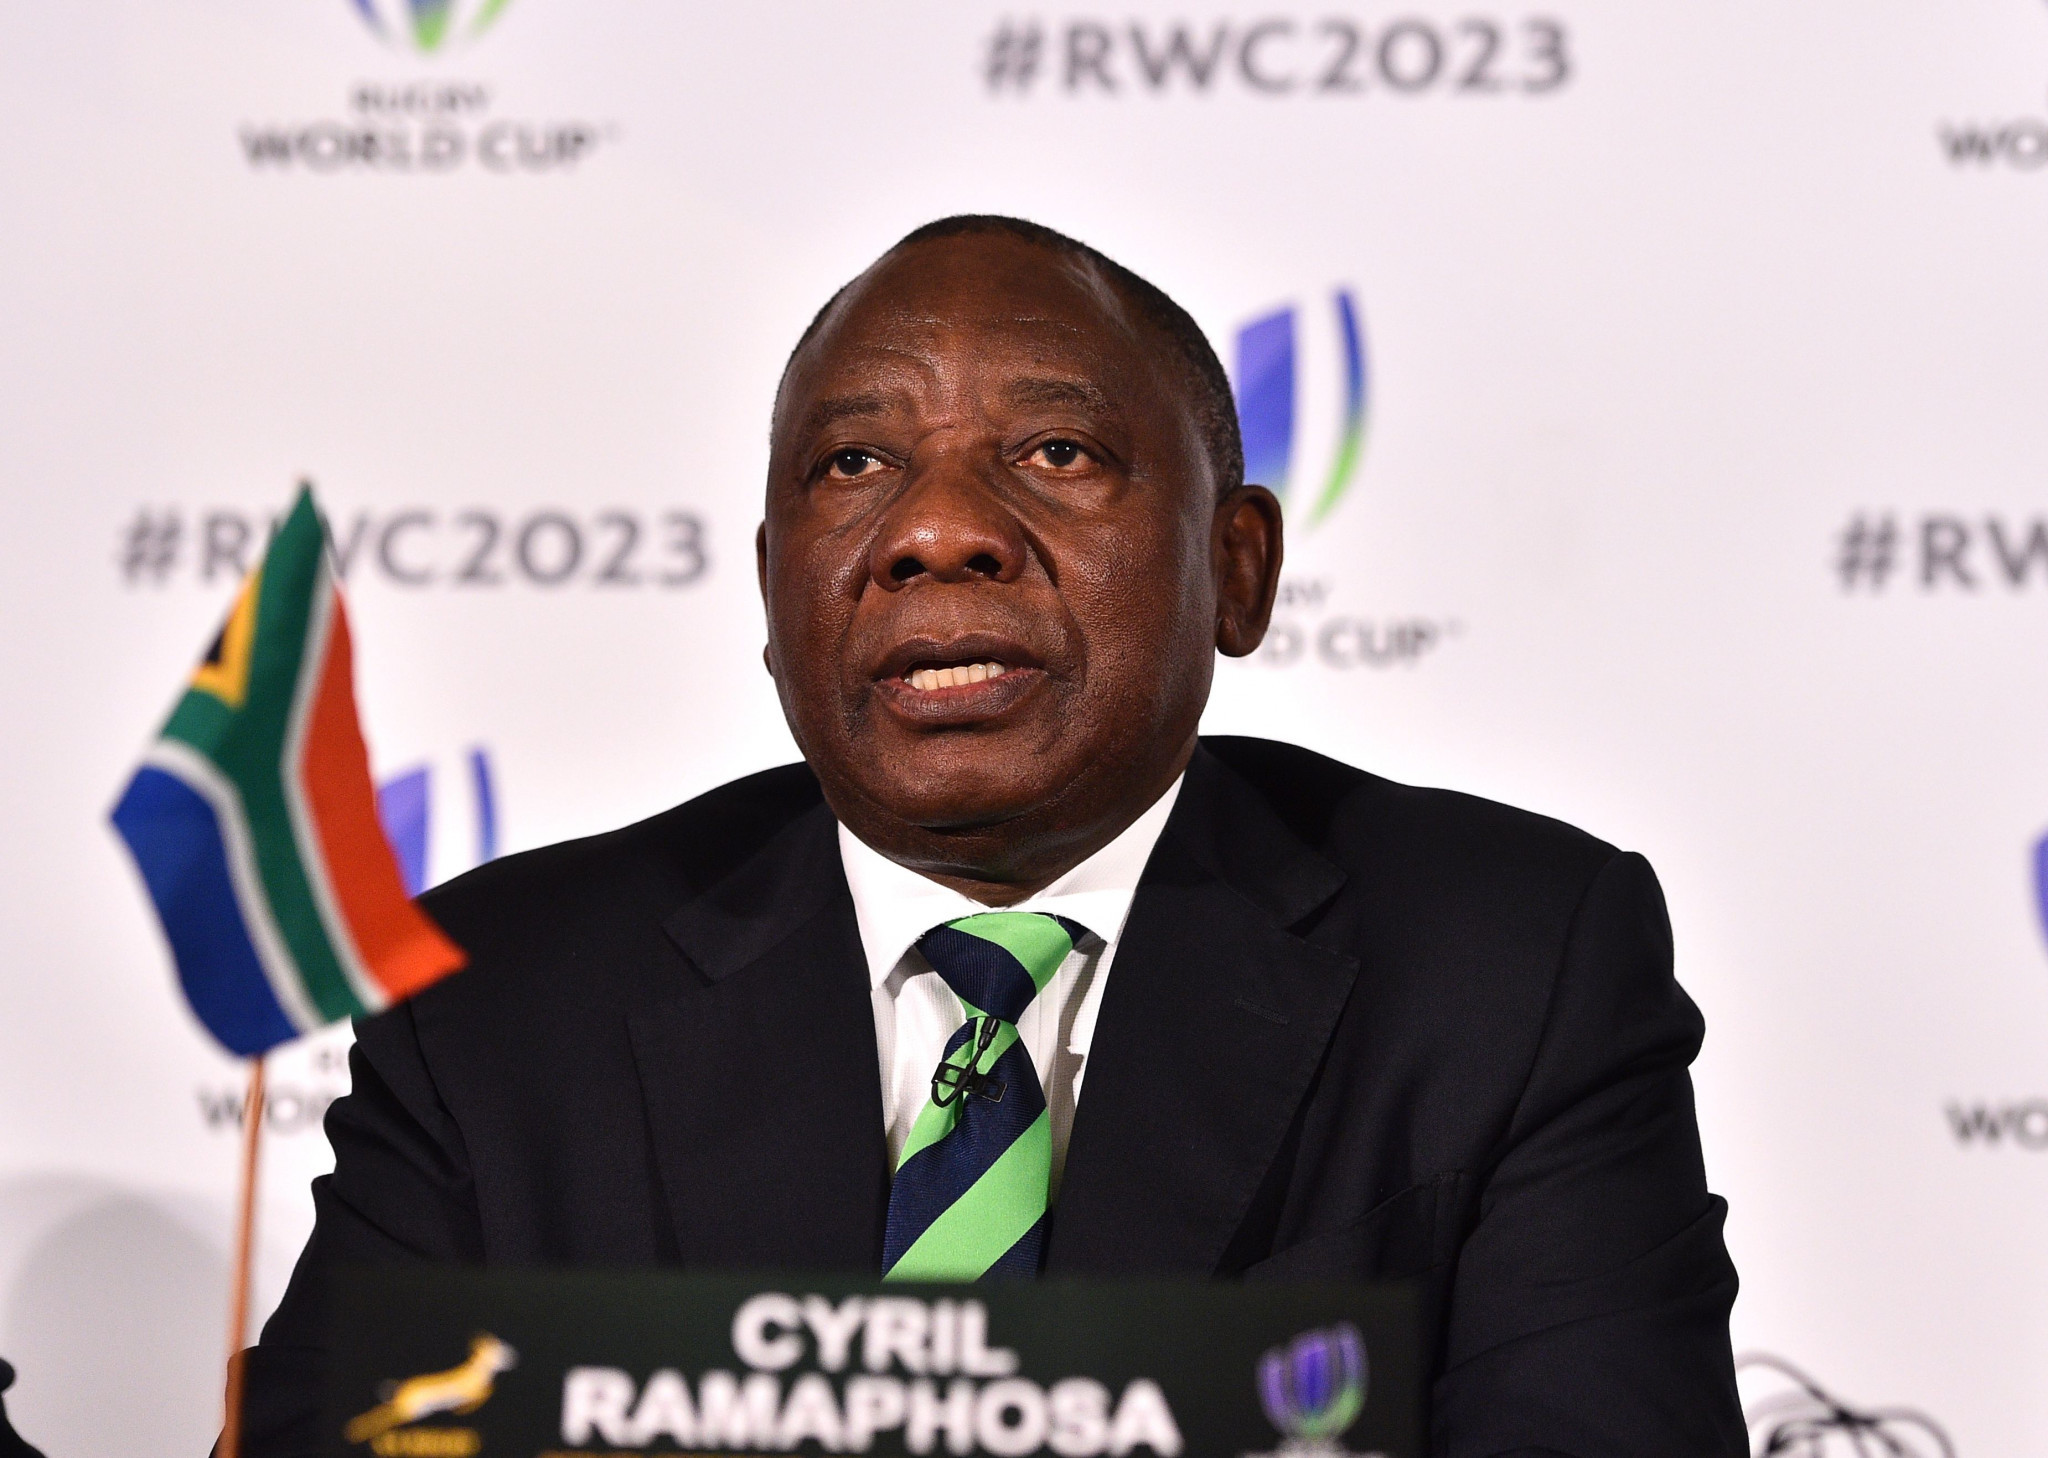 Countries bidding for 2023 Rugby World Cup make presentations